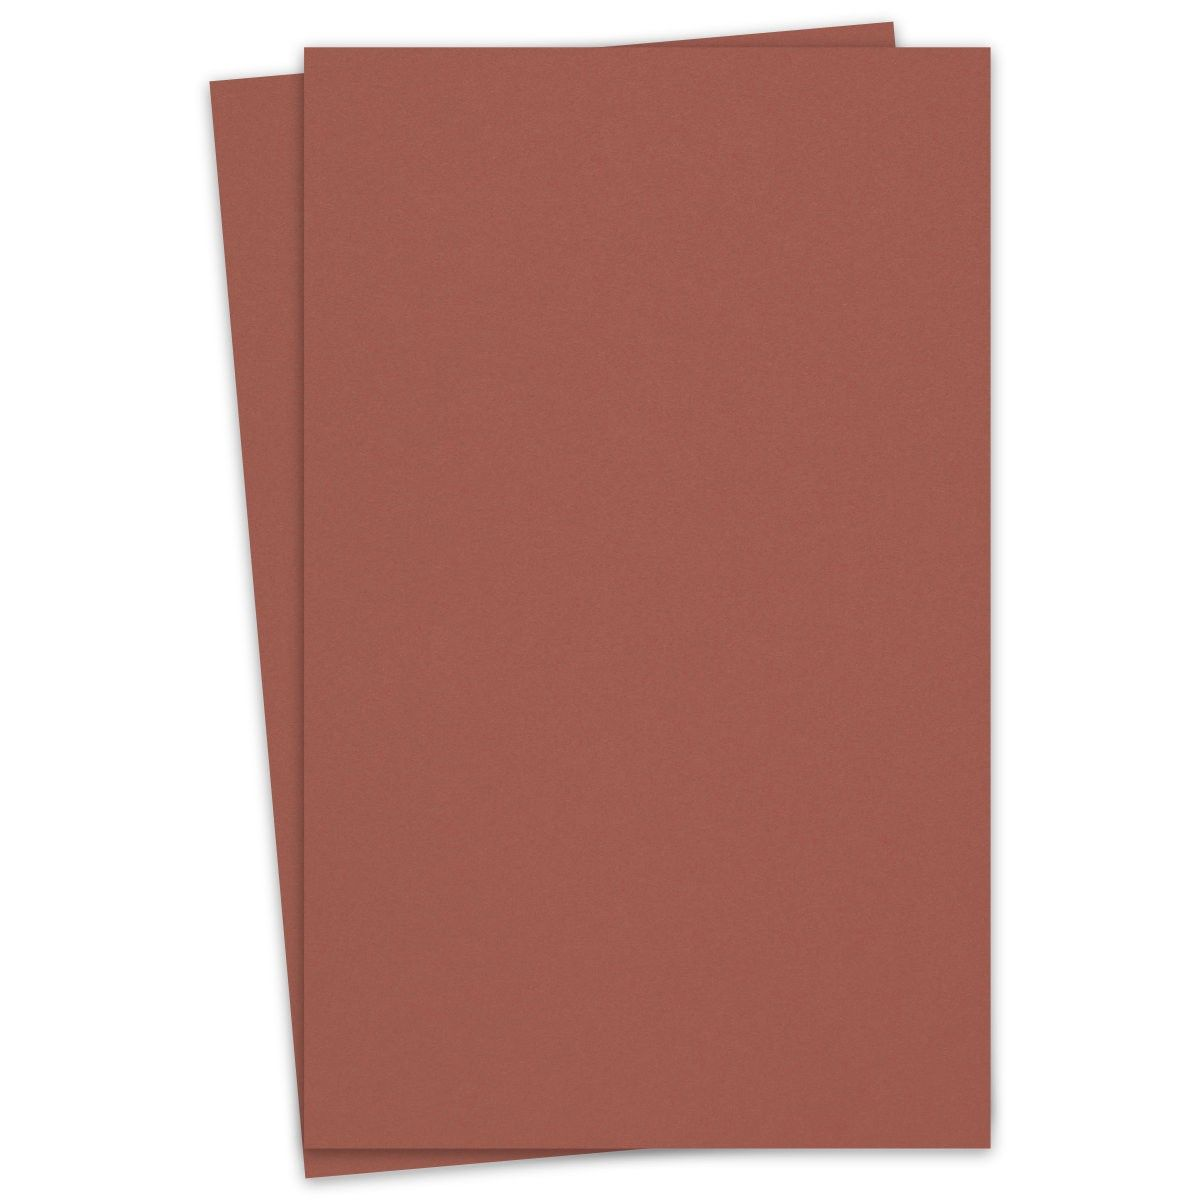 Clearance Rosebud Keaykolour 11x17 Ledger Size Paper 32 80lb Text 200 Pk In 2020 Cardstock Paper Cover Paper Rose Buds